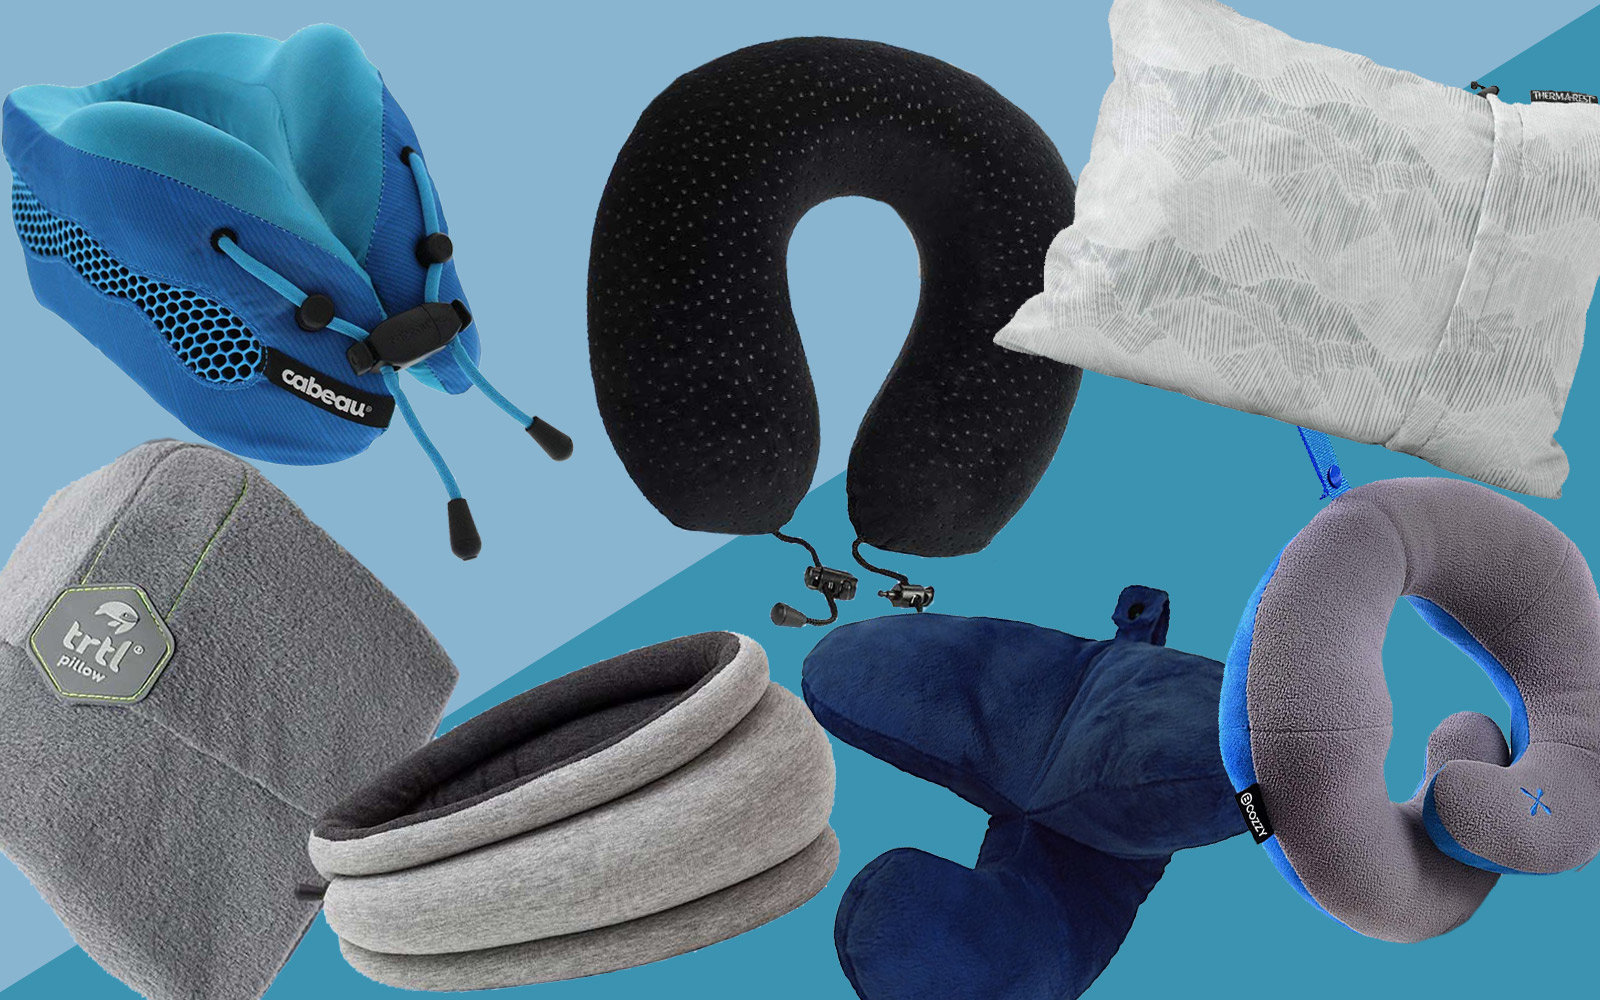 14 Best Travel Pillows Neck Support For The Airplane Travel